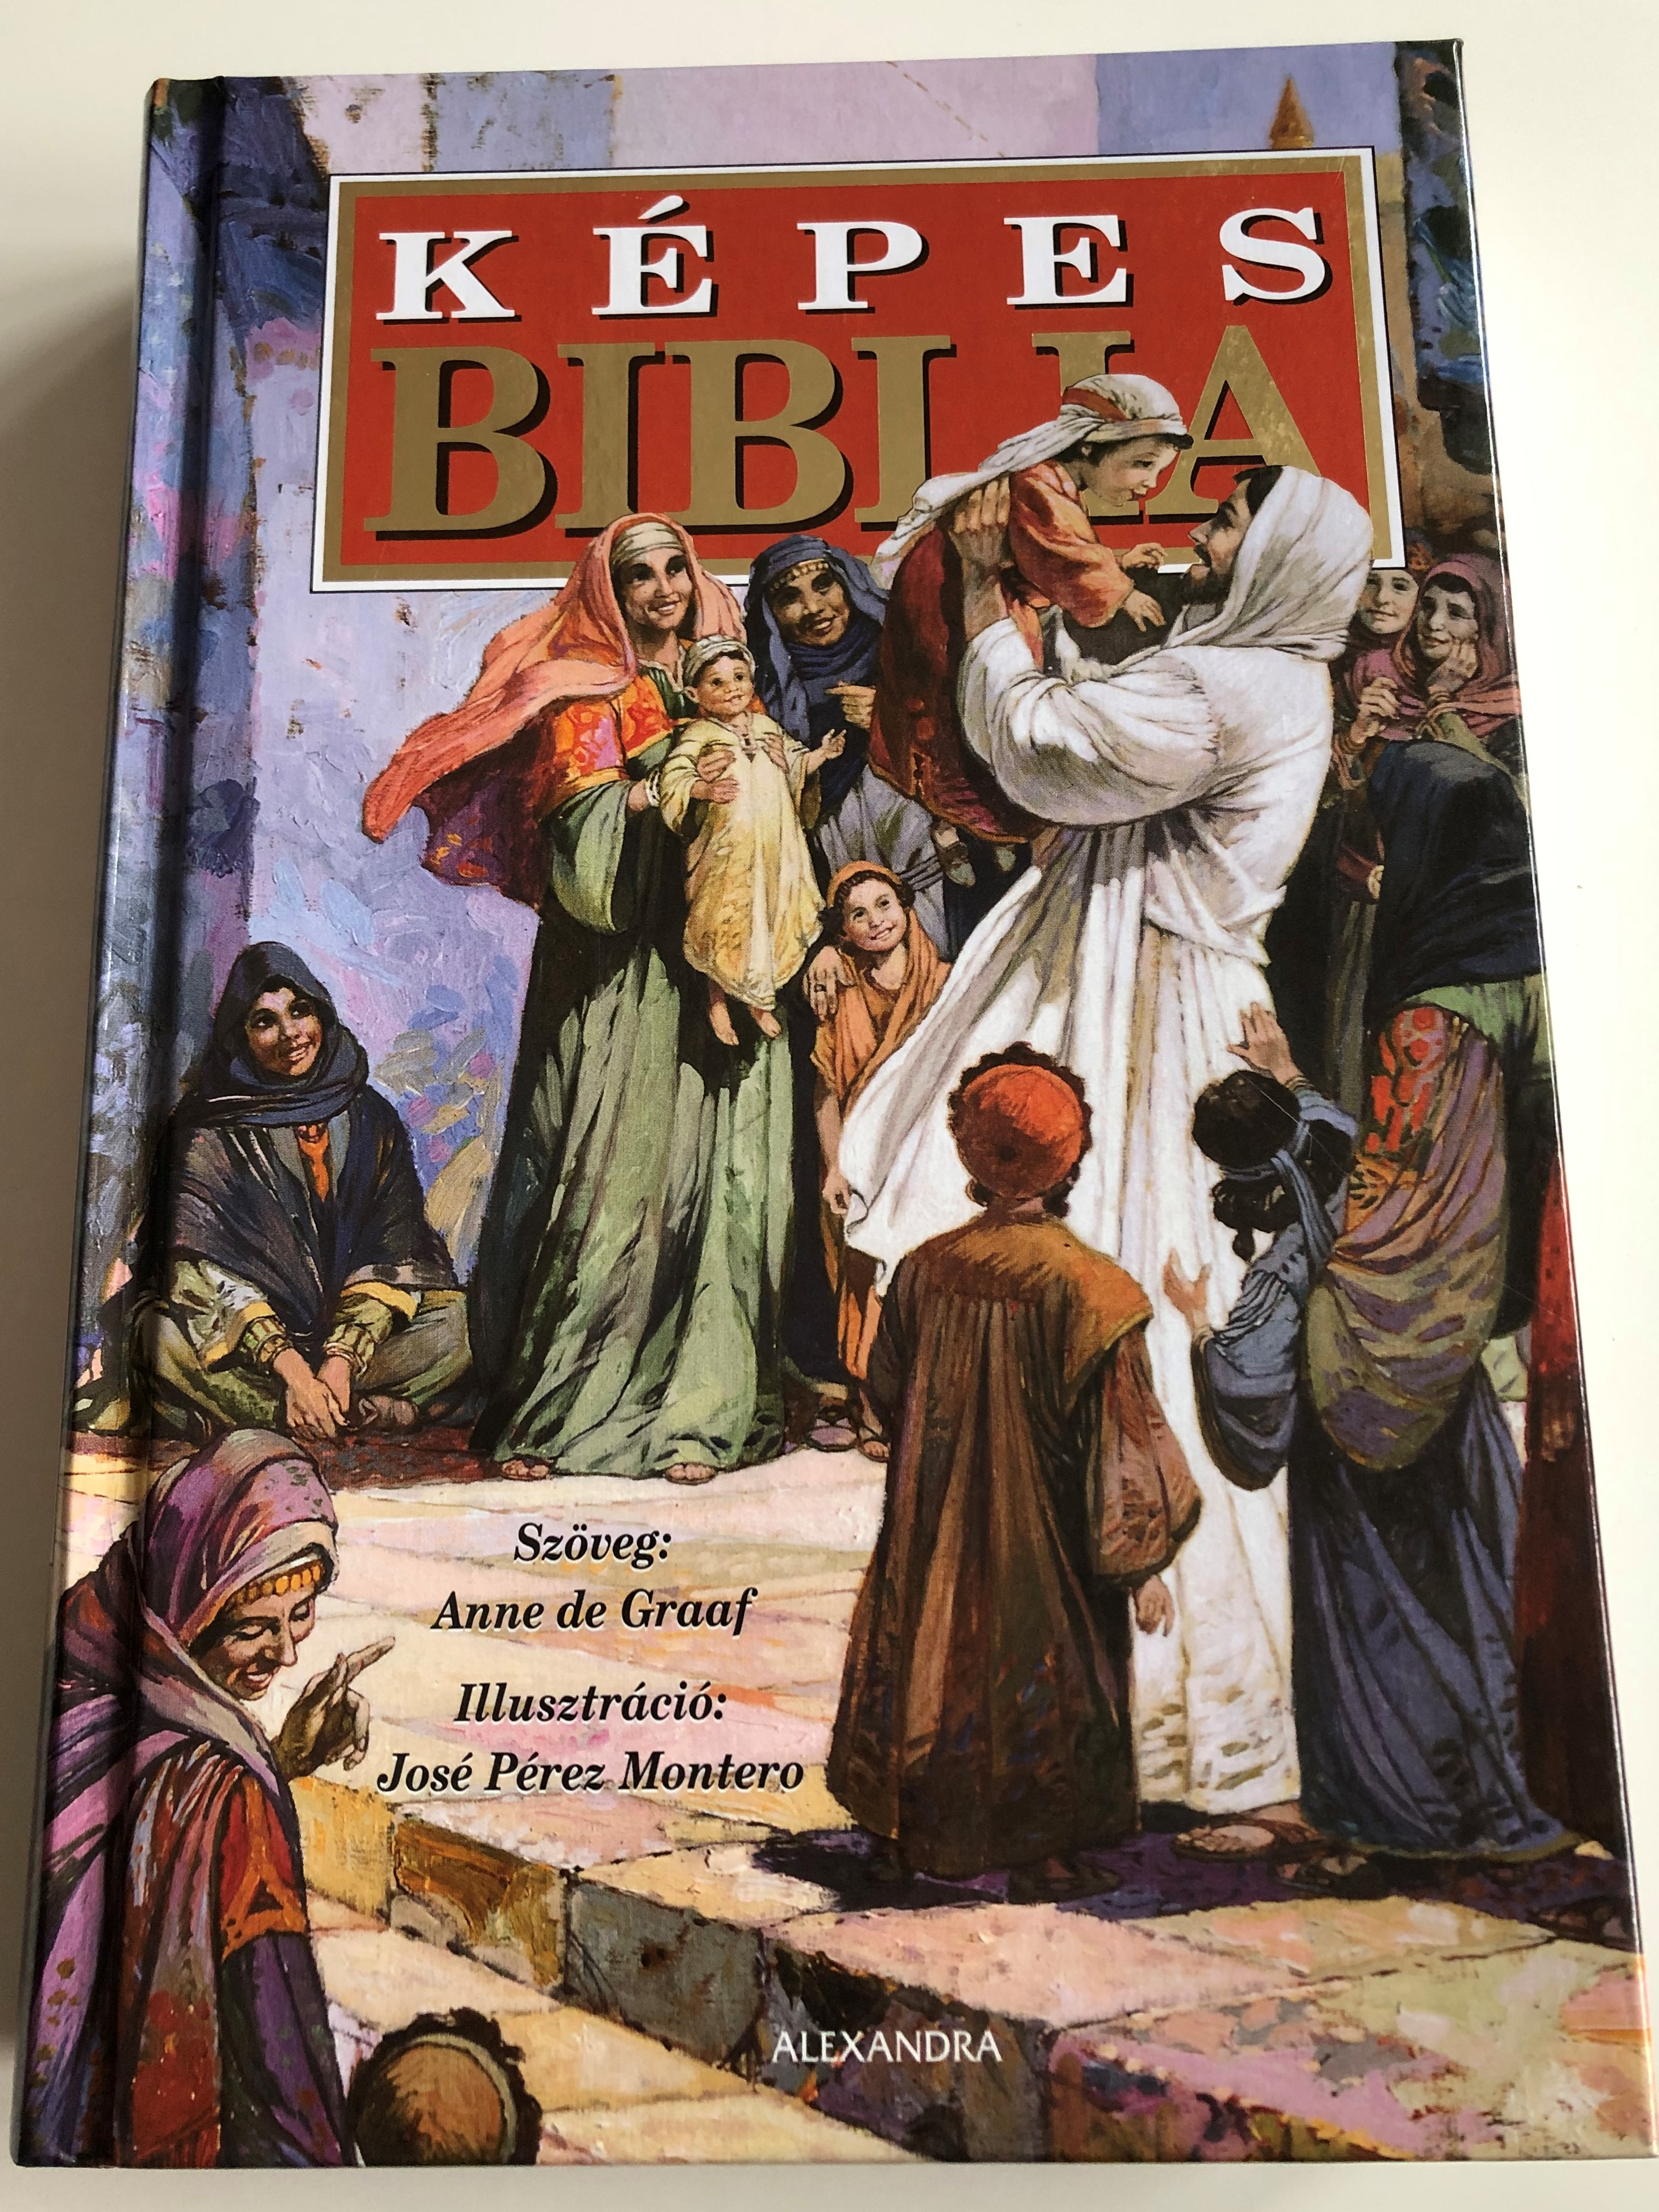 k-pes-biblia-hungarian-edition-of-the-children-s-bible-retord-by-anne-de-graaf-1.jpg